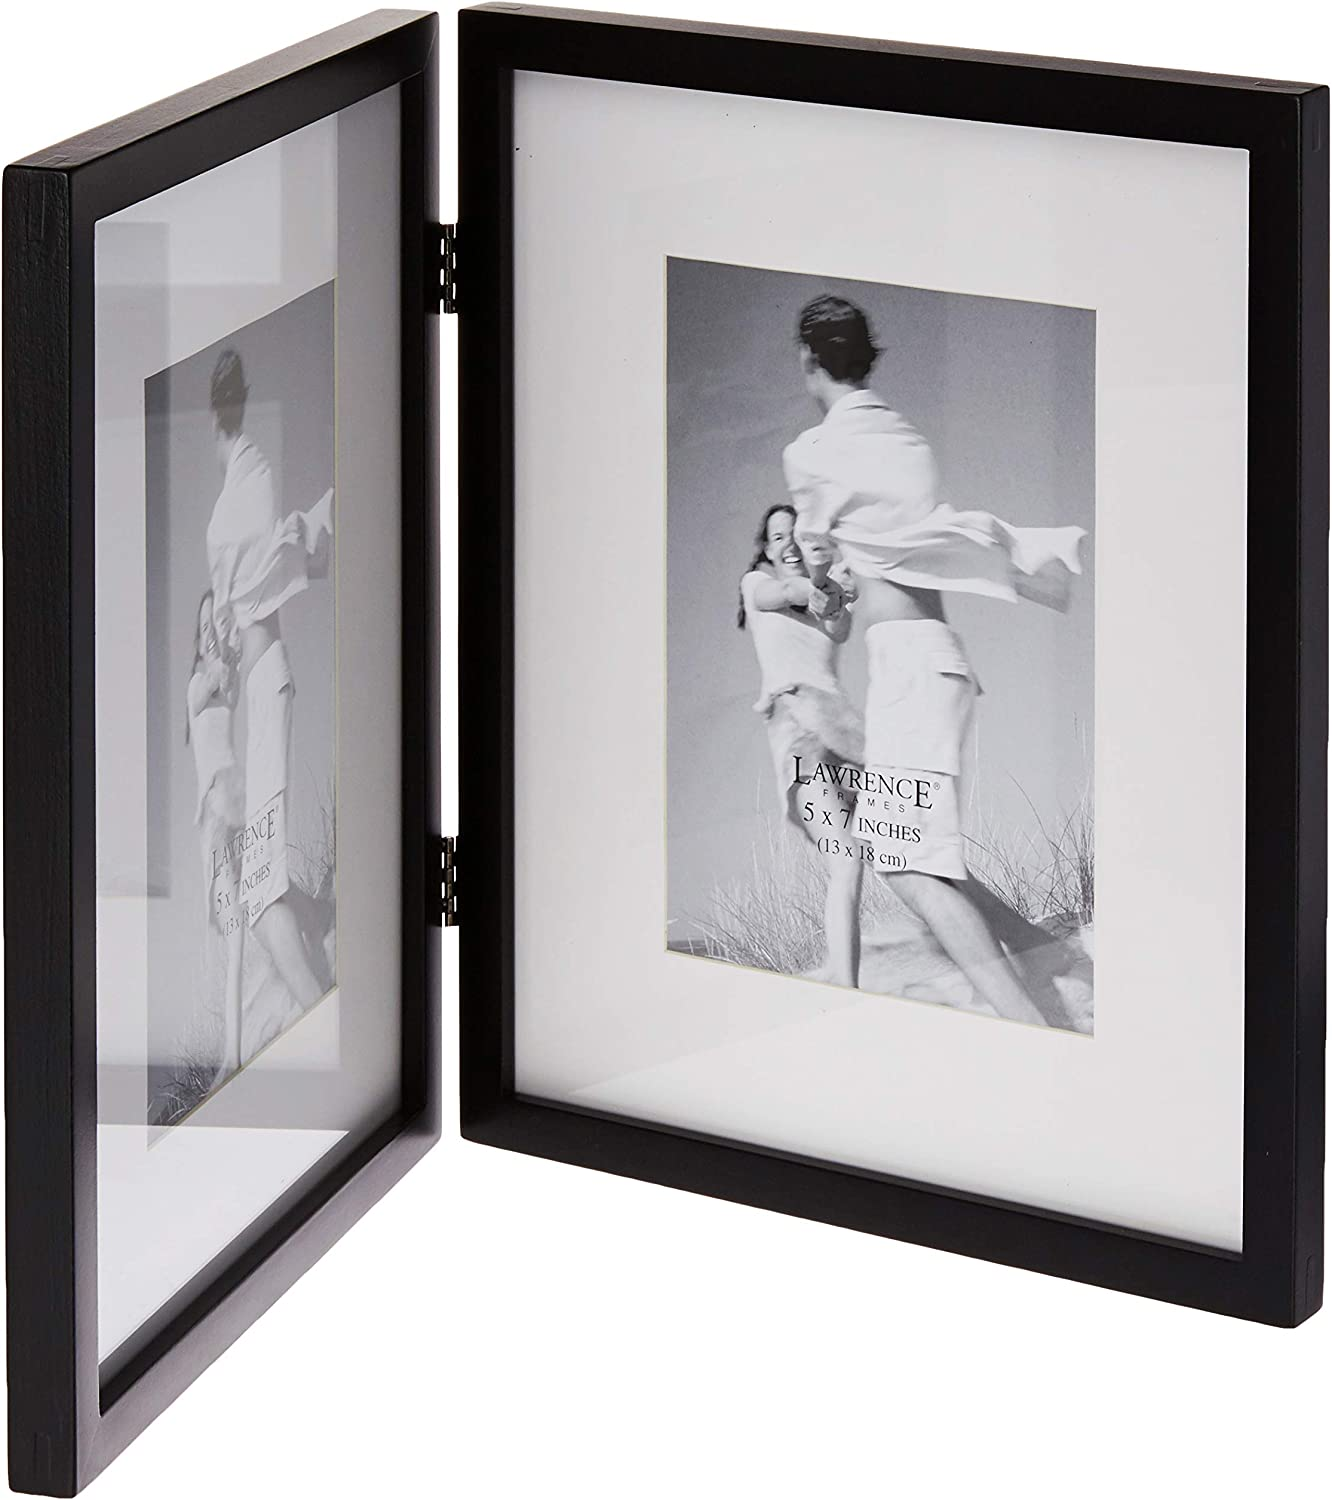 Lawrence Frames Black Wood 8 By 10 Hinged Double Picture Frame Matted To 5 By 7 Amazon Co Uk Kitchen Home